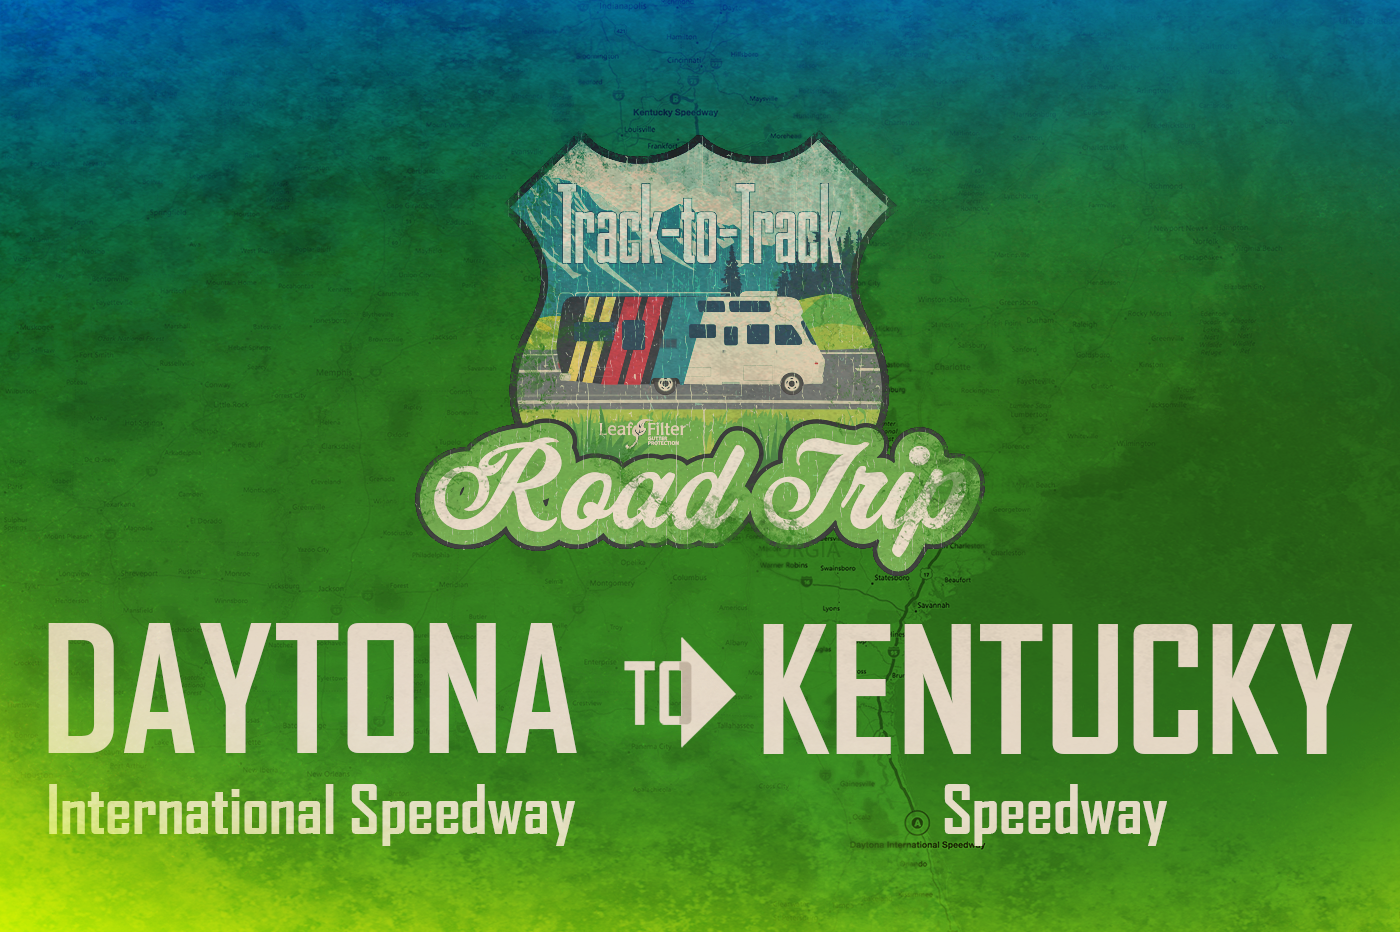 Track-to-track road trip Daytona to Kentucky